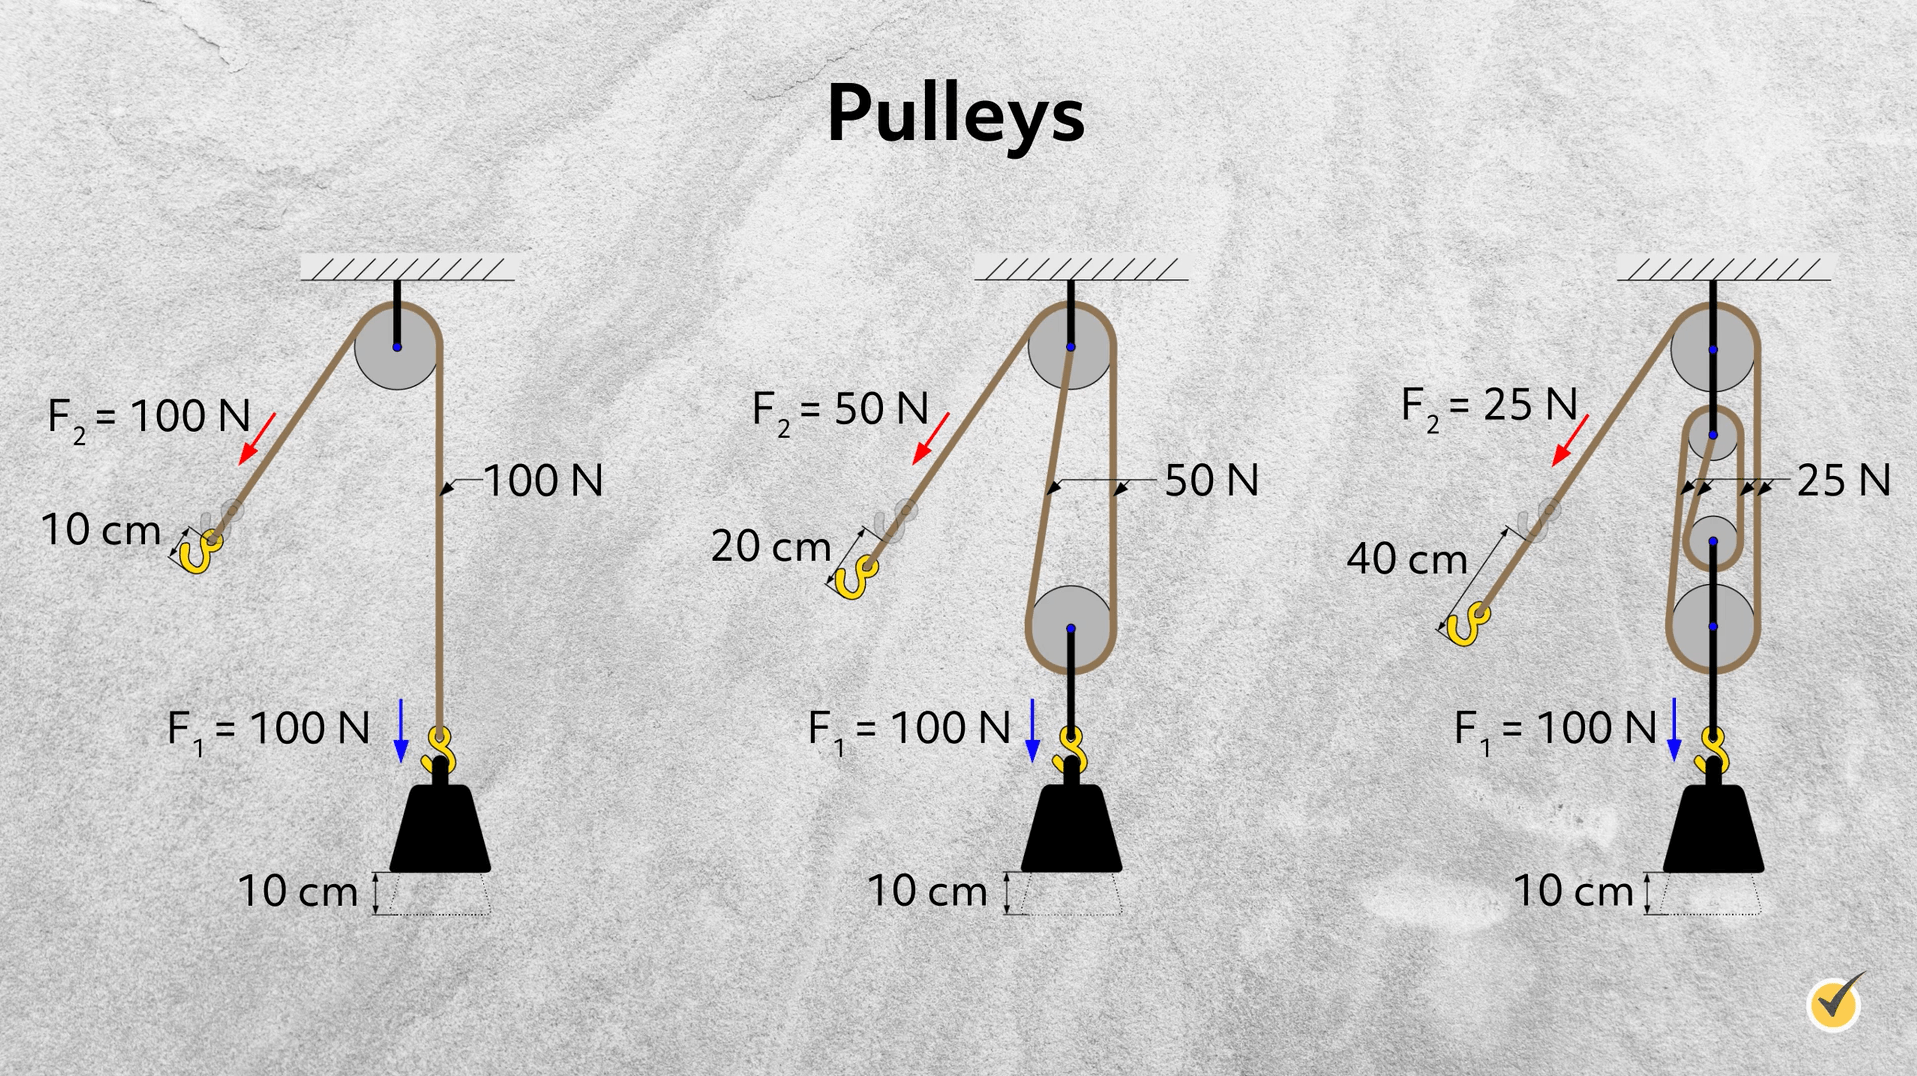 Image of 3 pullies with differing 'n's and cms.